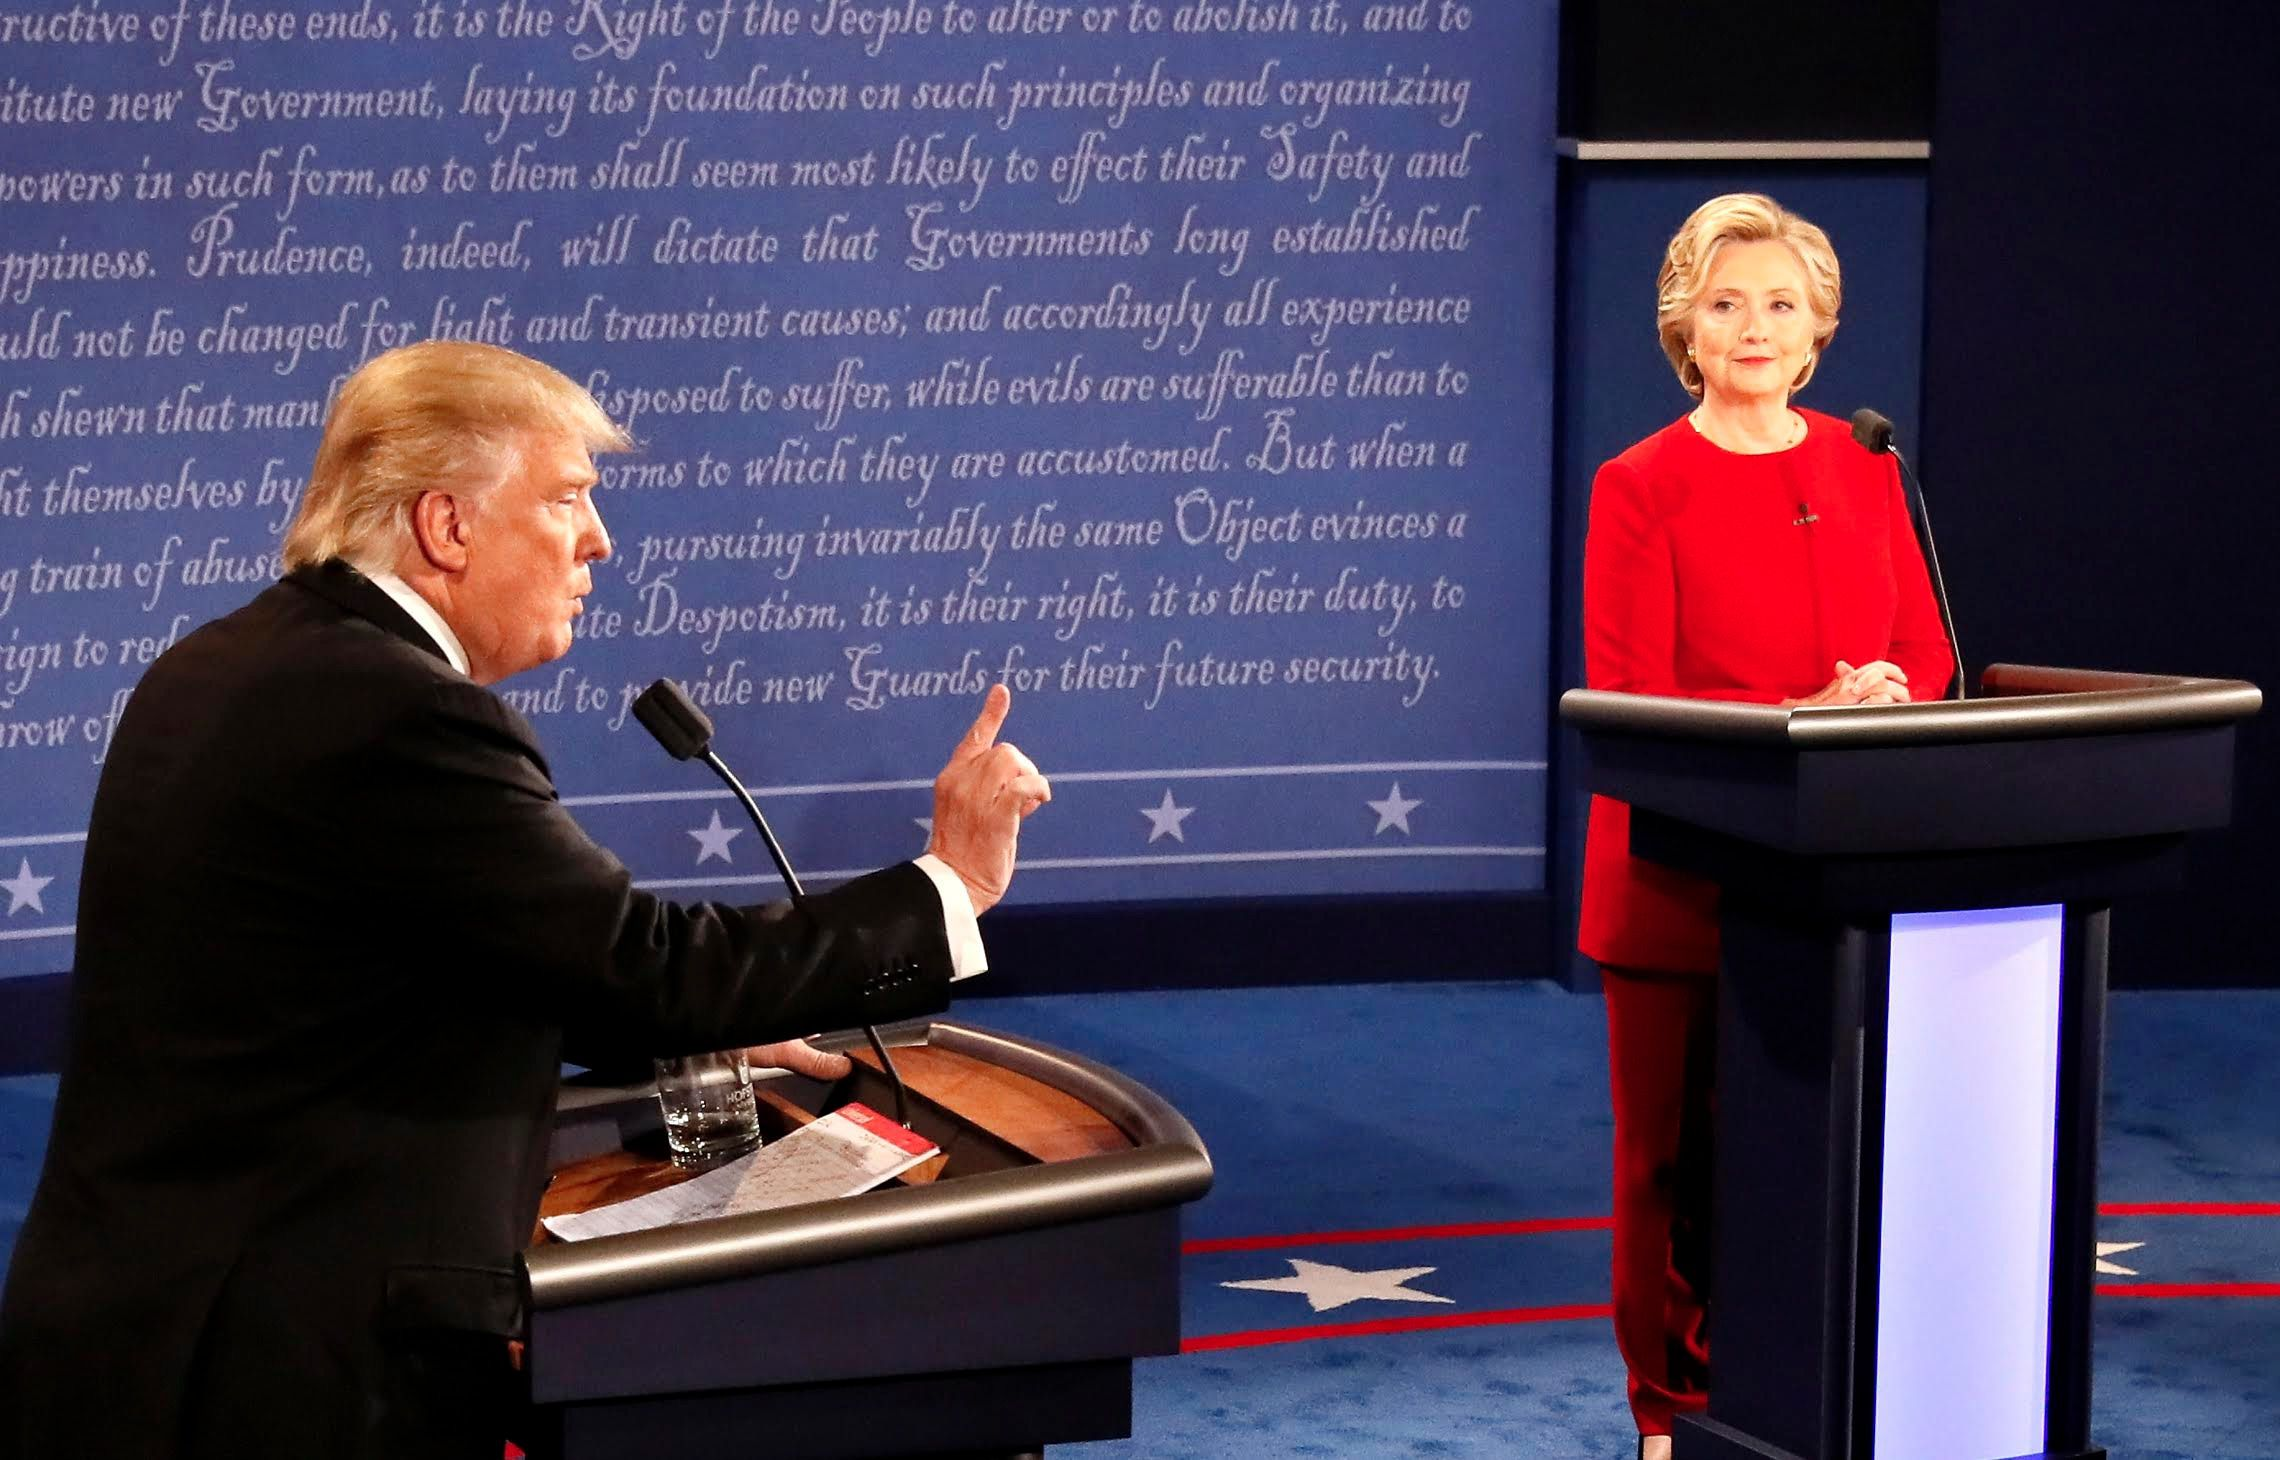 Donald Trump interrupted Clinton 51 times, but those tactics often serve men well.